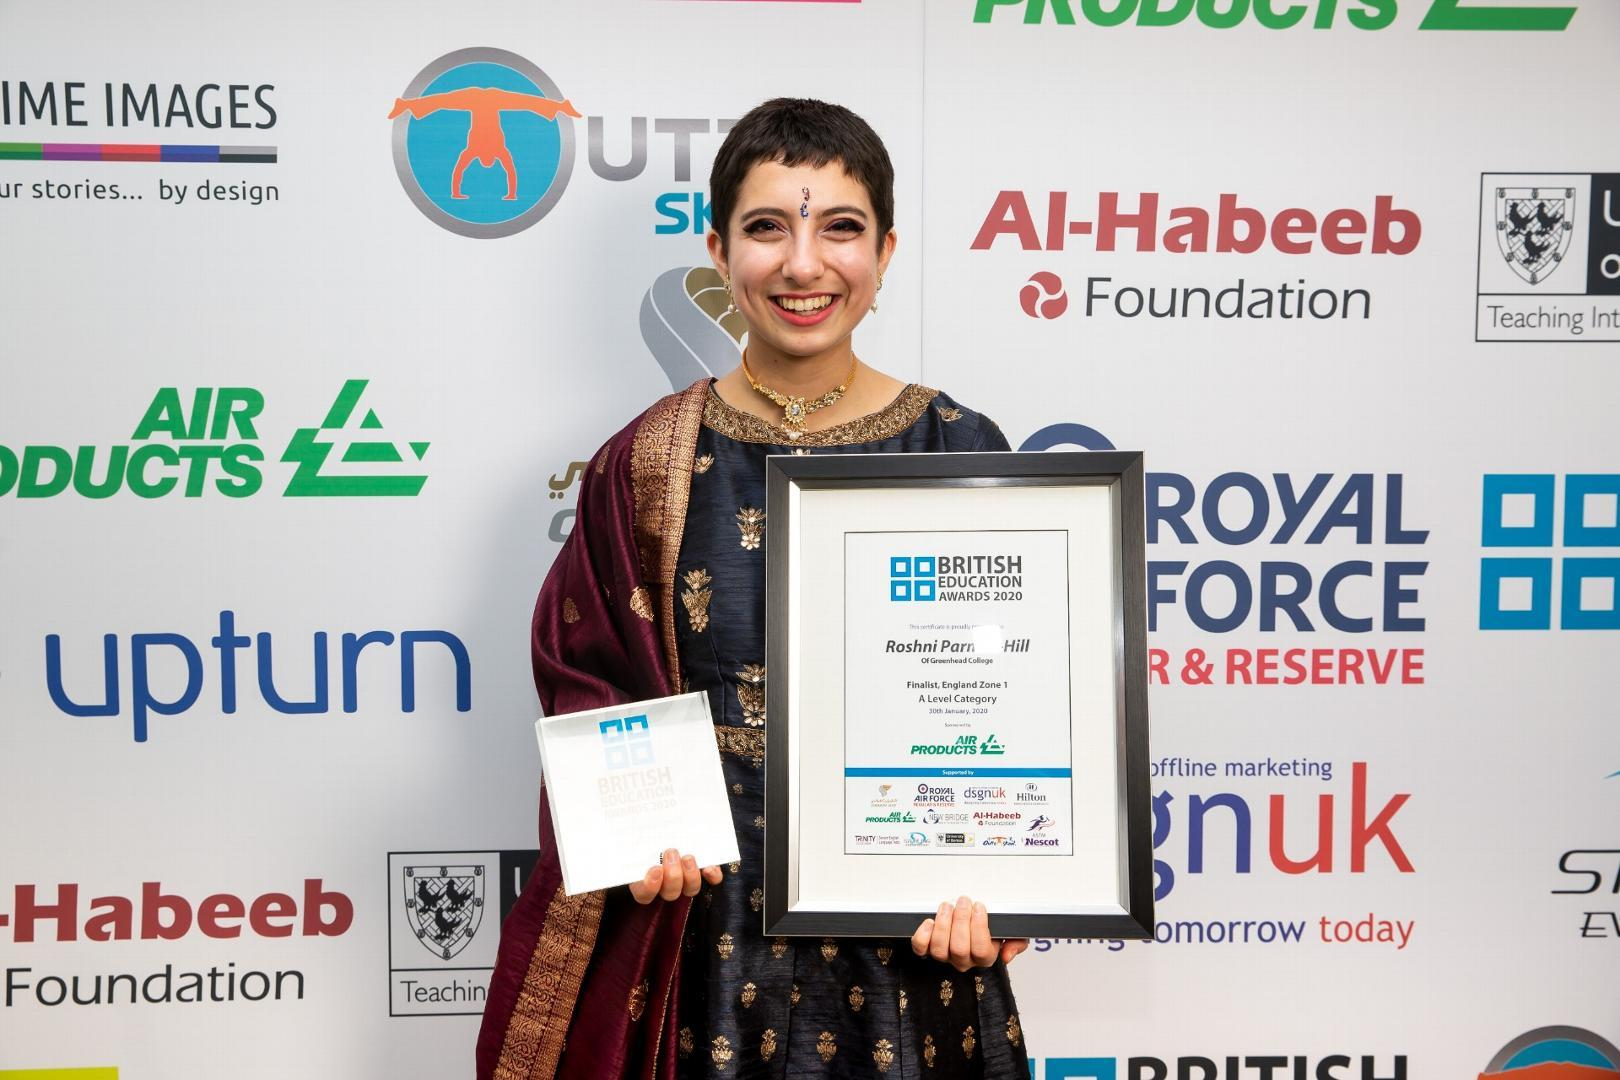 Roshni Parmar-Hill announced the winner at the British Education Awards